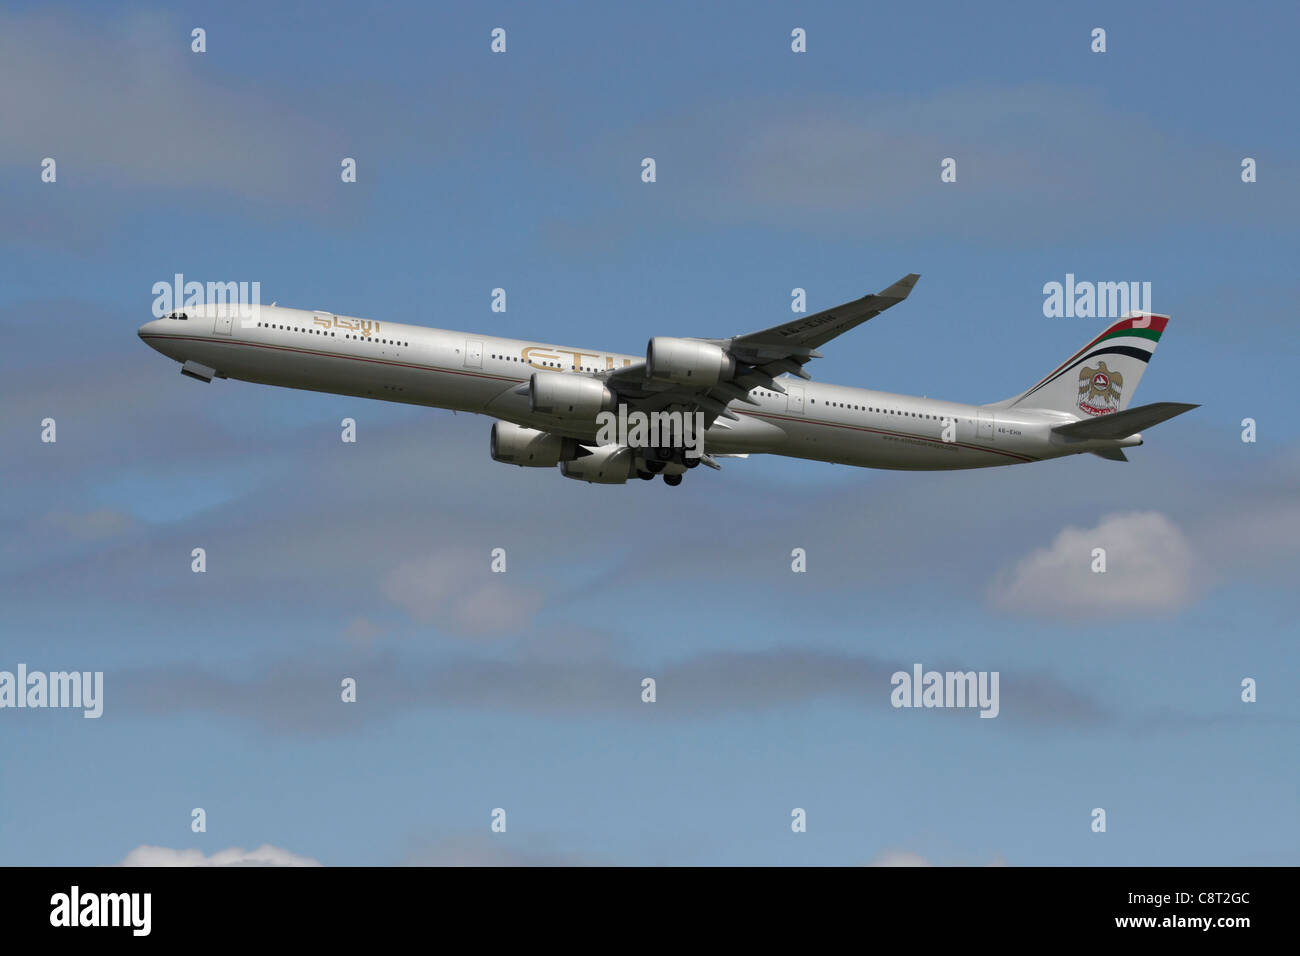 Etihad Airways Airbus A340-600 long haul airliner climbing on departure - Stock Image